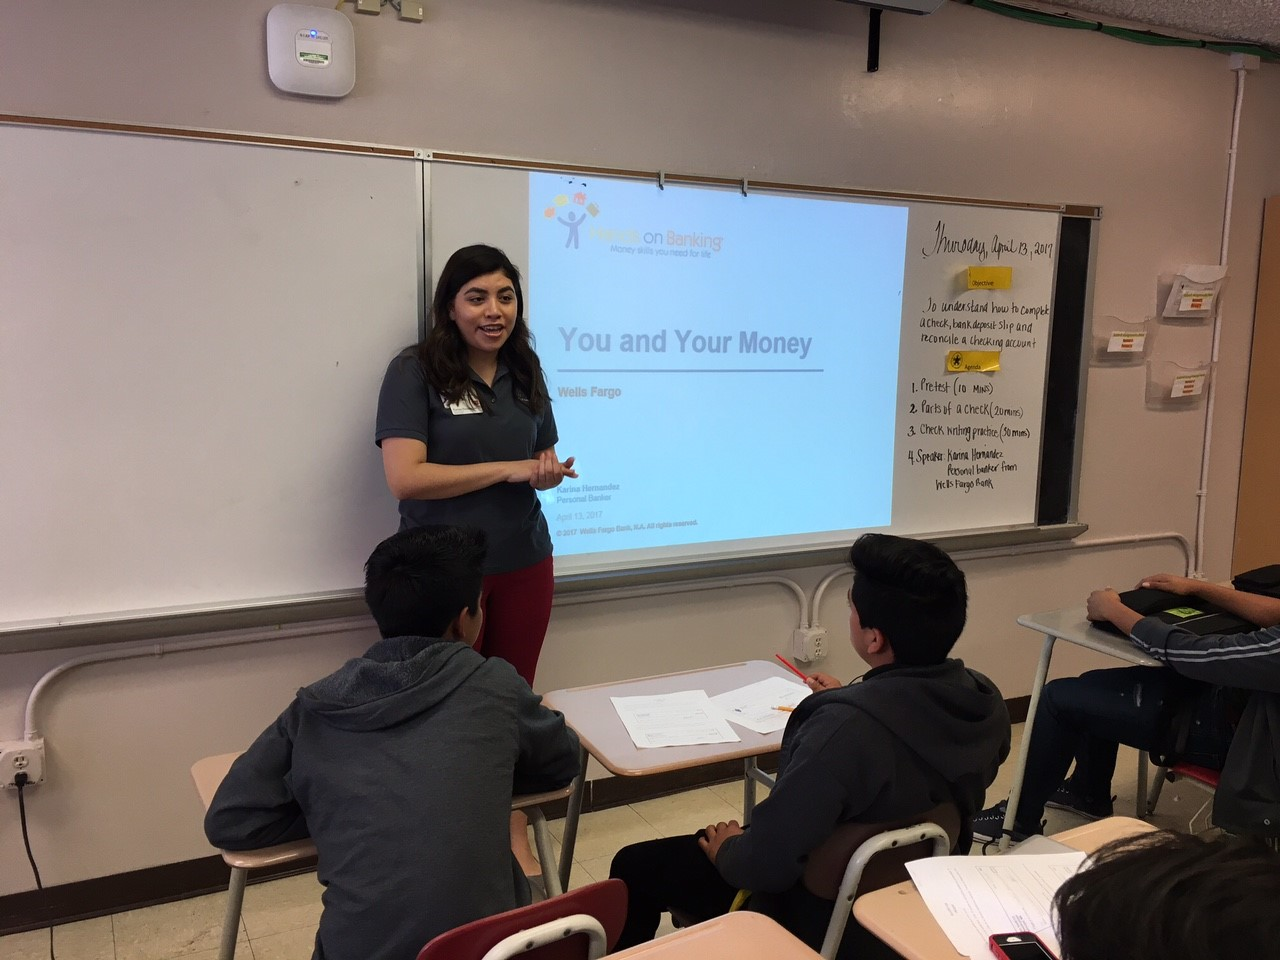 2012 Lee HS Graduate Karina Hernandez spoke to the students in Mrs. Wilkins' class about financial responsibility.